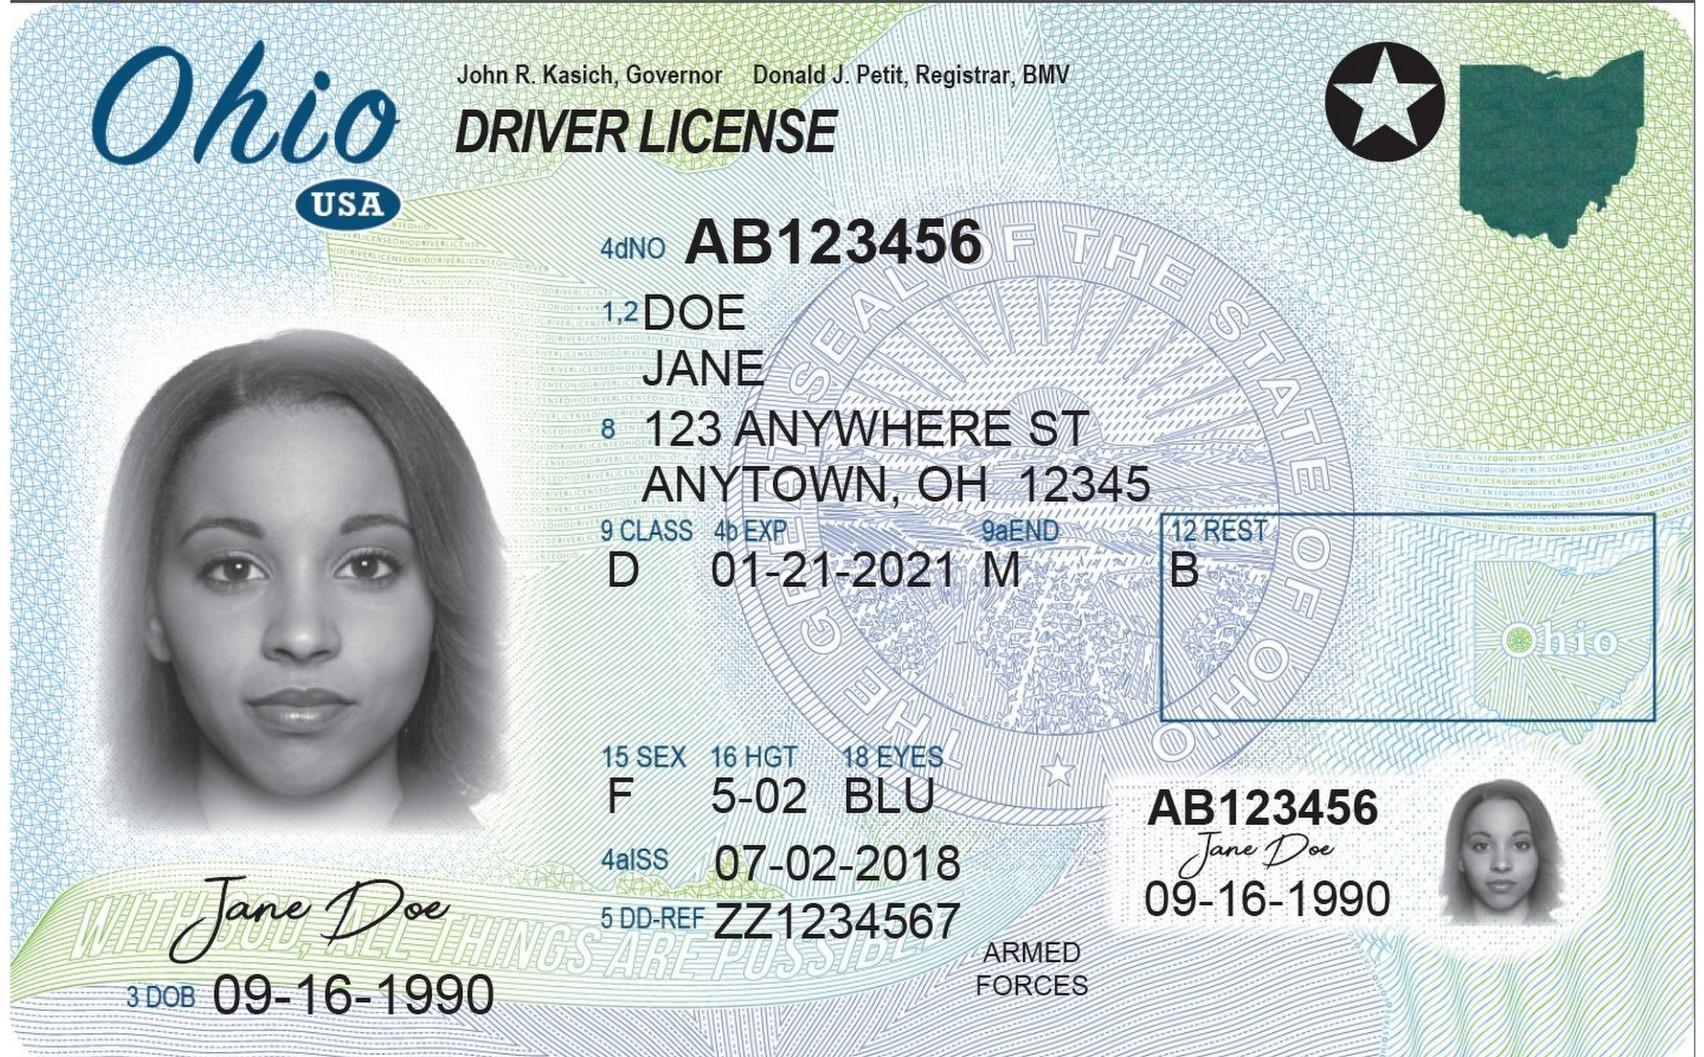 Wosu New The Driver's Sends Through Mail Now Ohio Radio Licenses